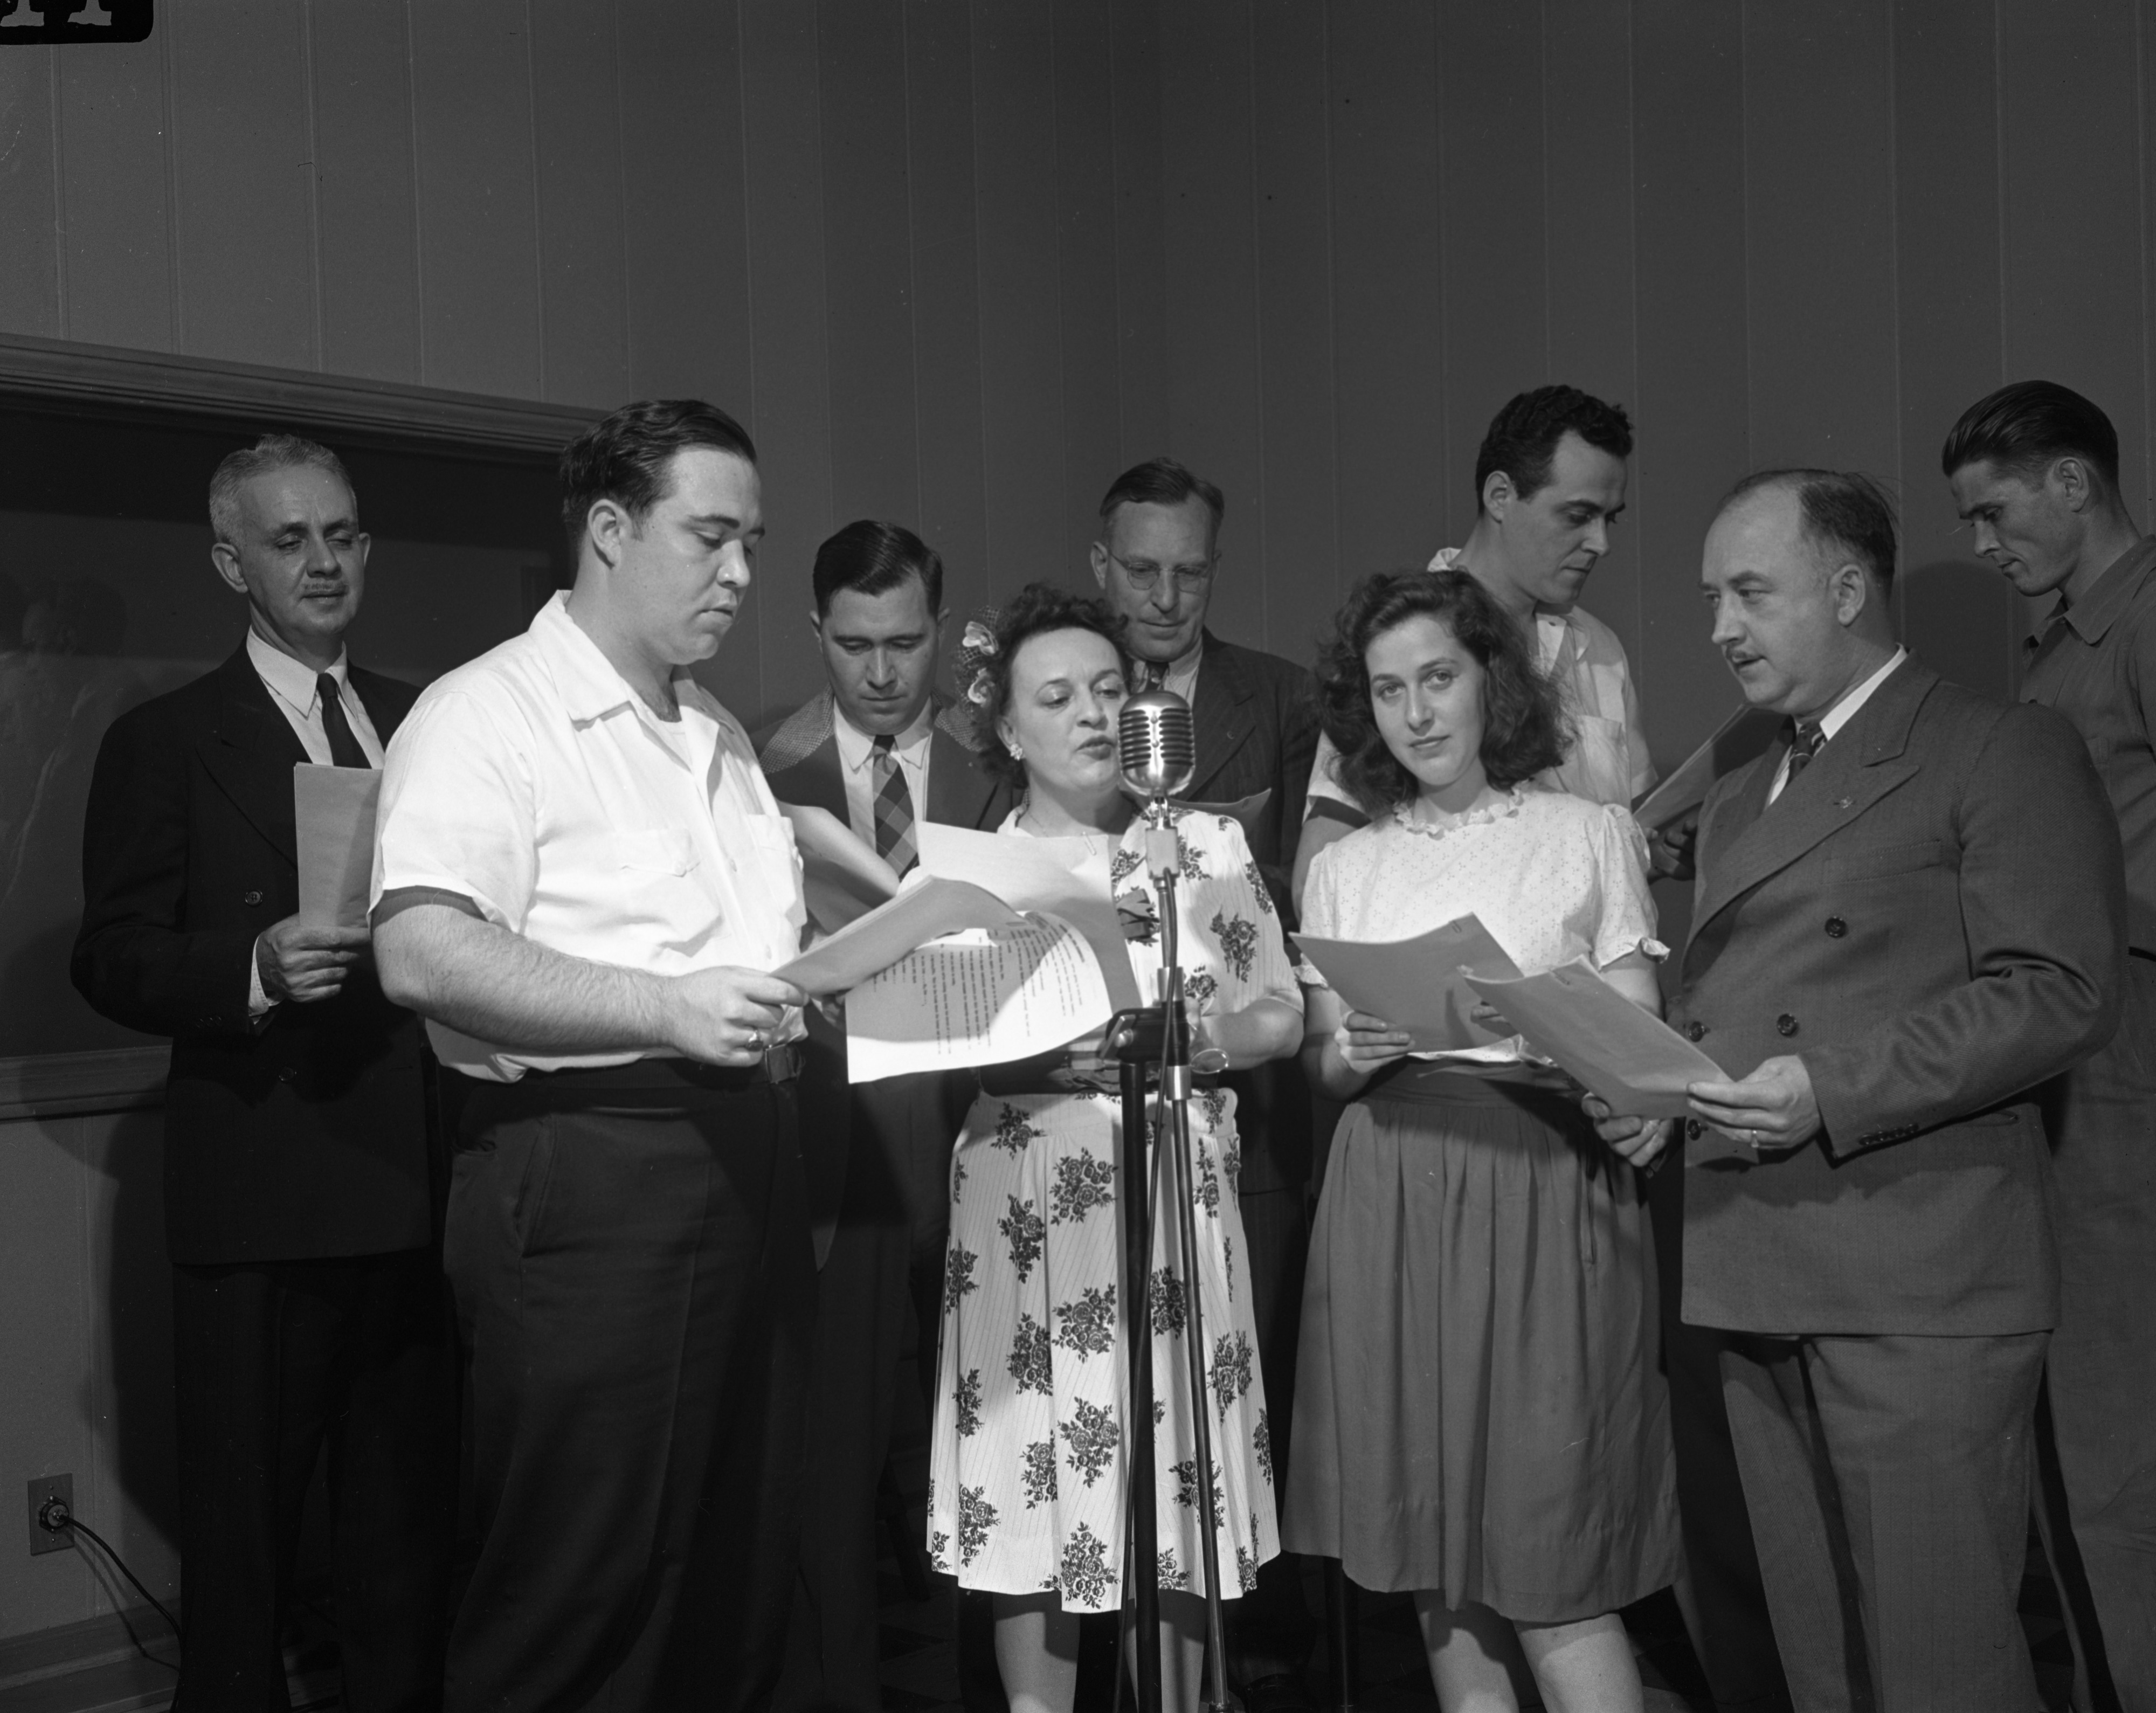 UAW-CIO Union Broadcast at WPAG, June 1945 image